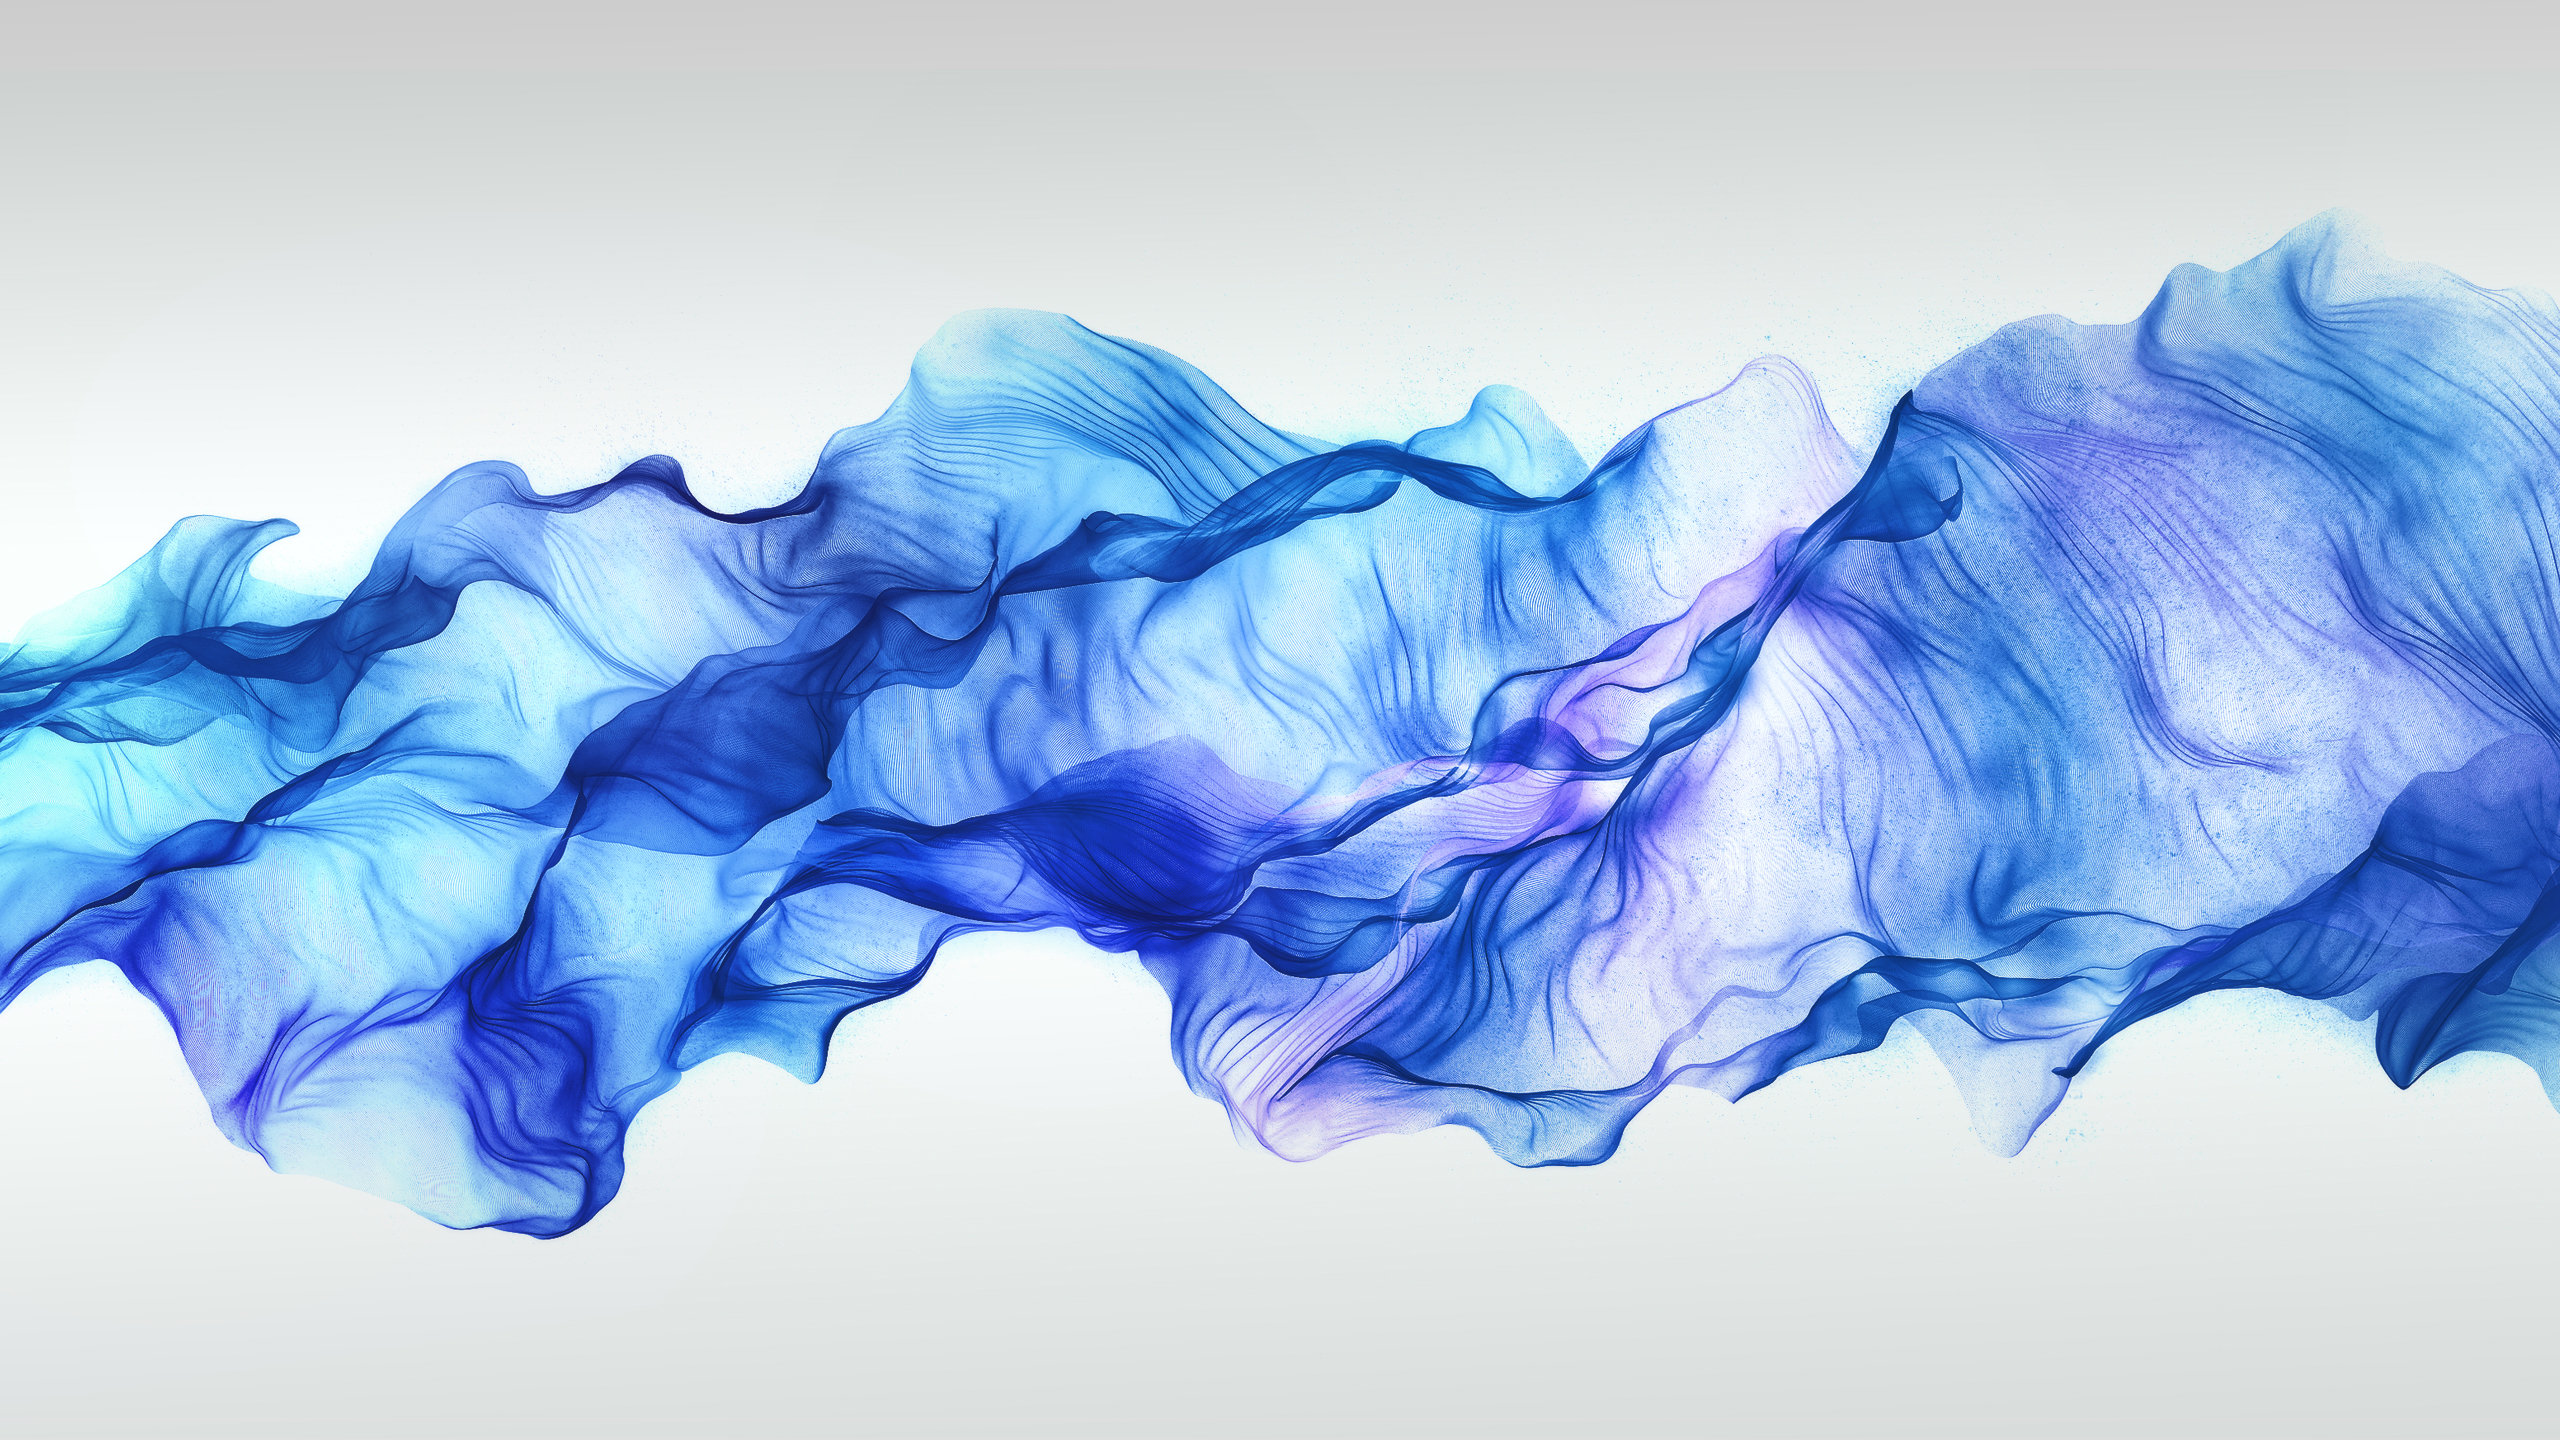 Free download Cool background ID:372142 hd 2560x1440 for PC